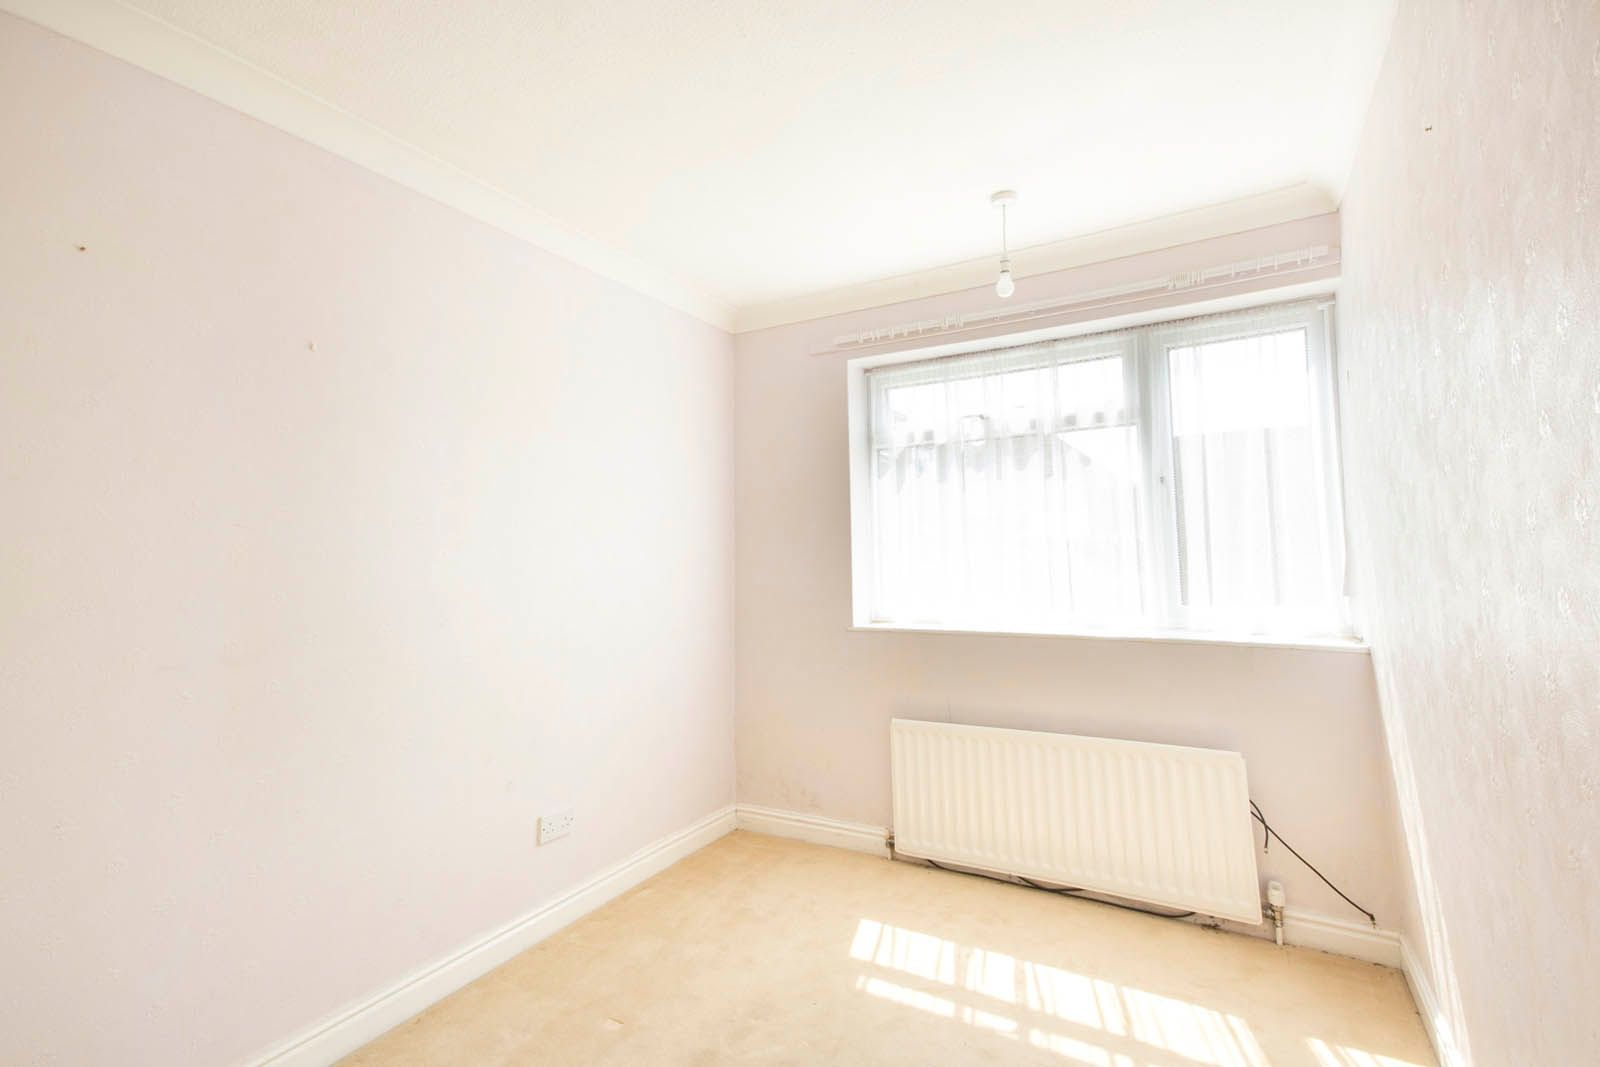 2 bed  for sale in Harsfold Close COMP MAY 2019  - Property Image 6